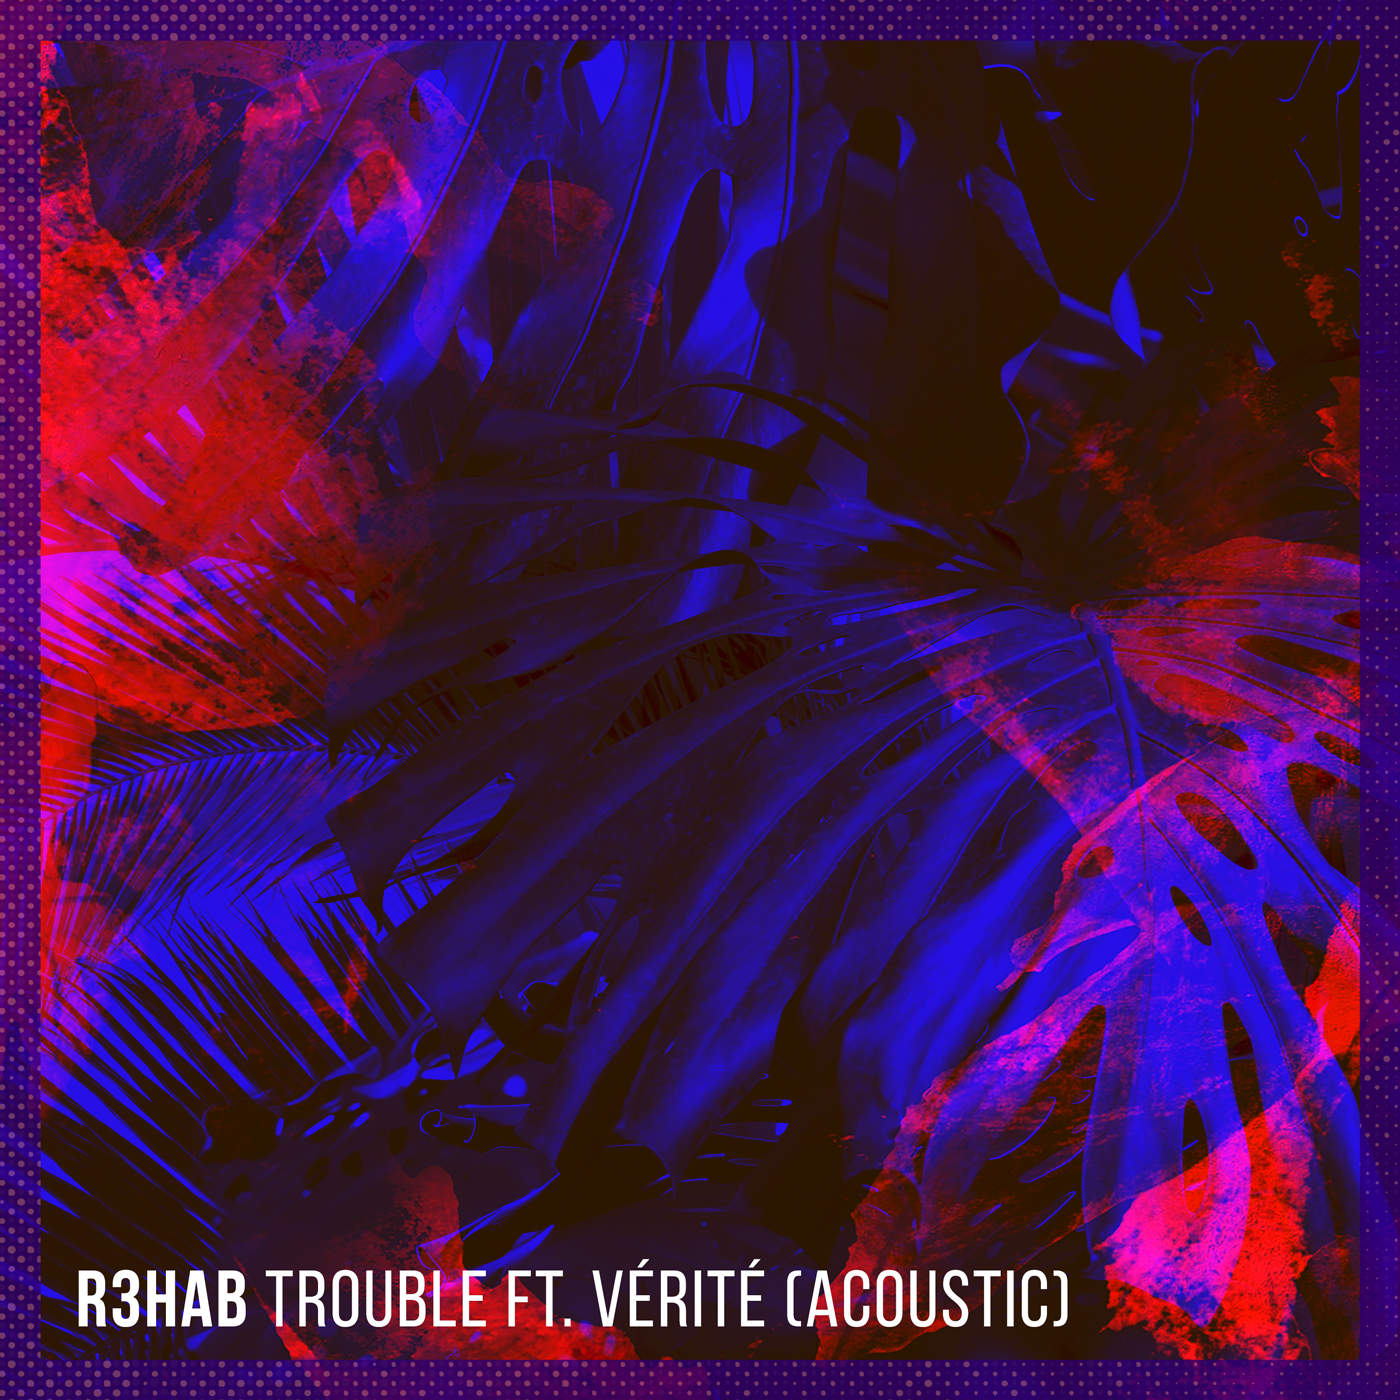 R3hab - Trouble (feat. VÉRITÉ) [Acoustic] - Single Cover